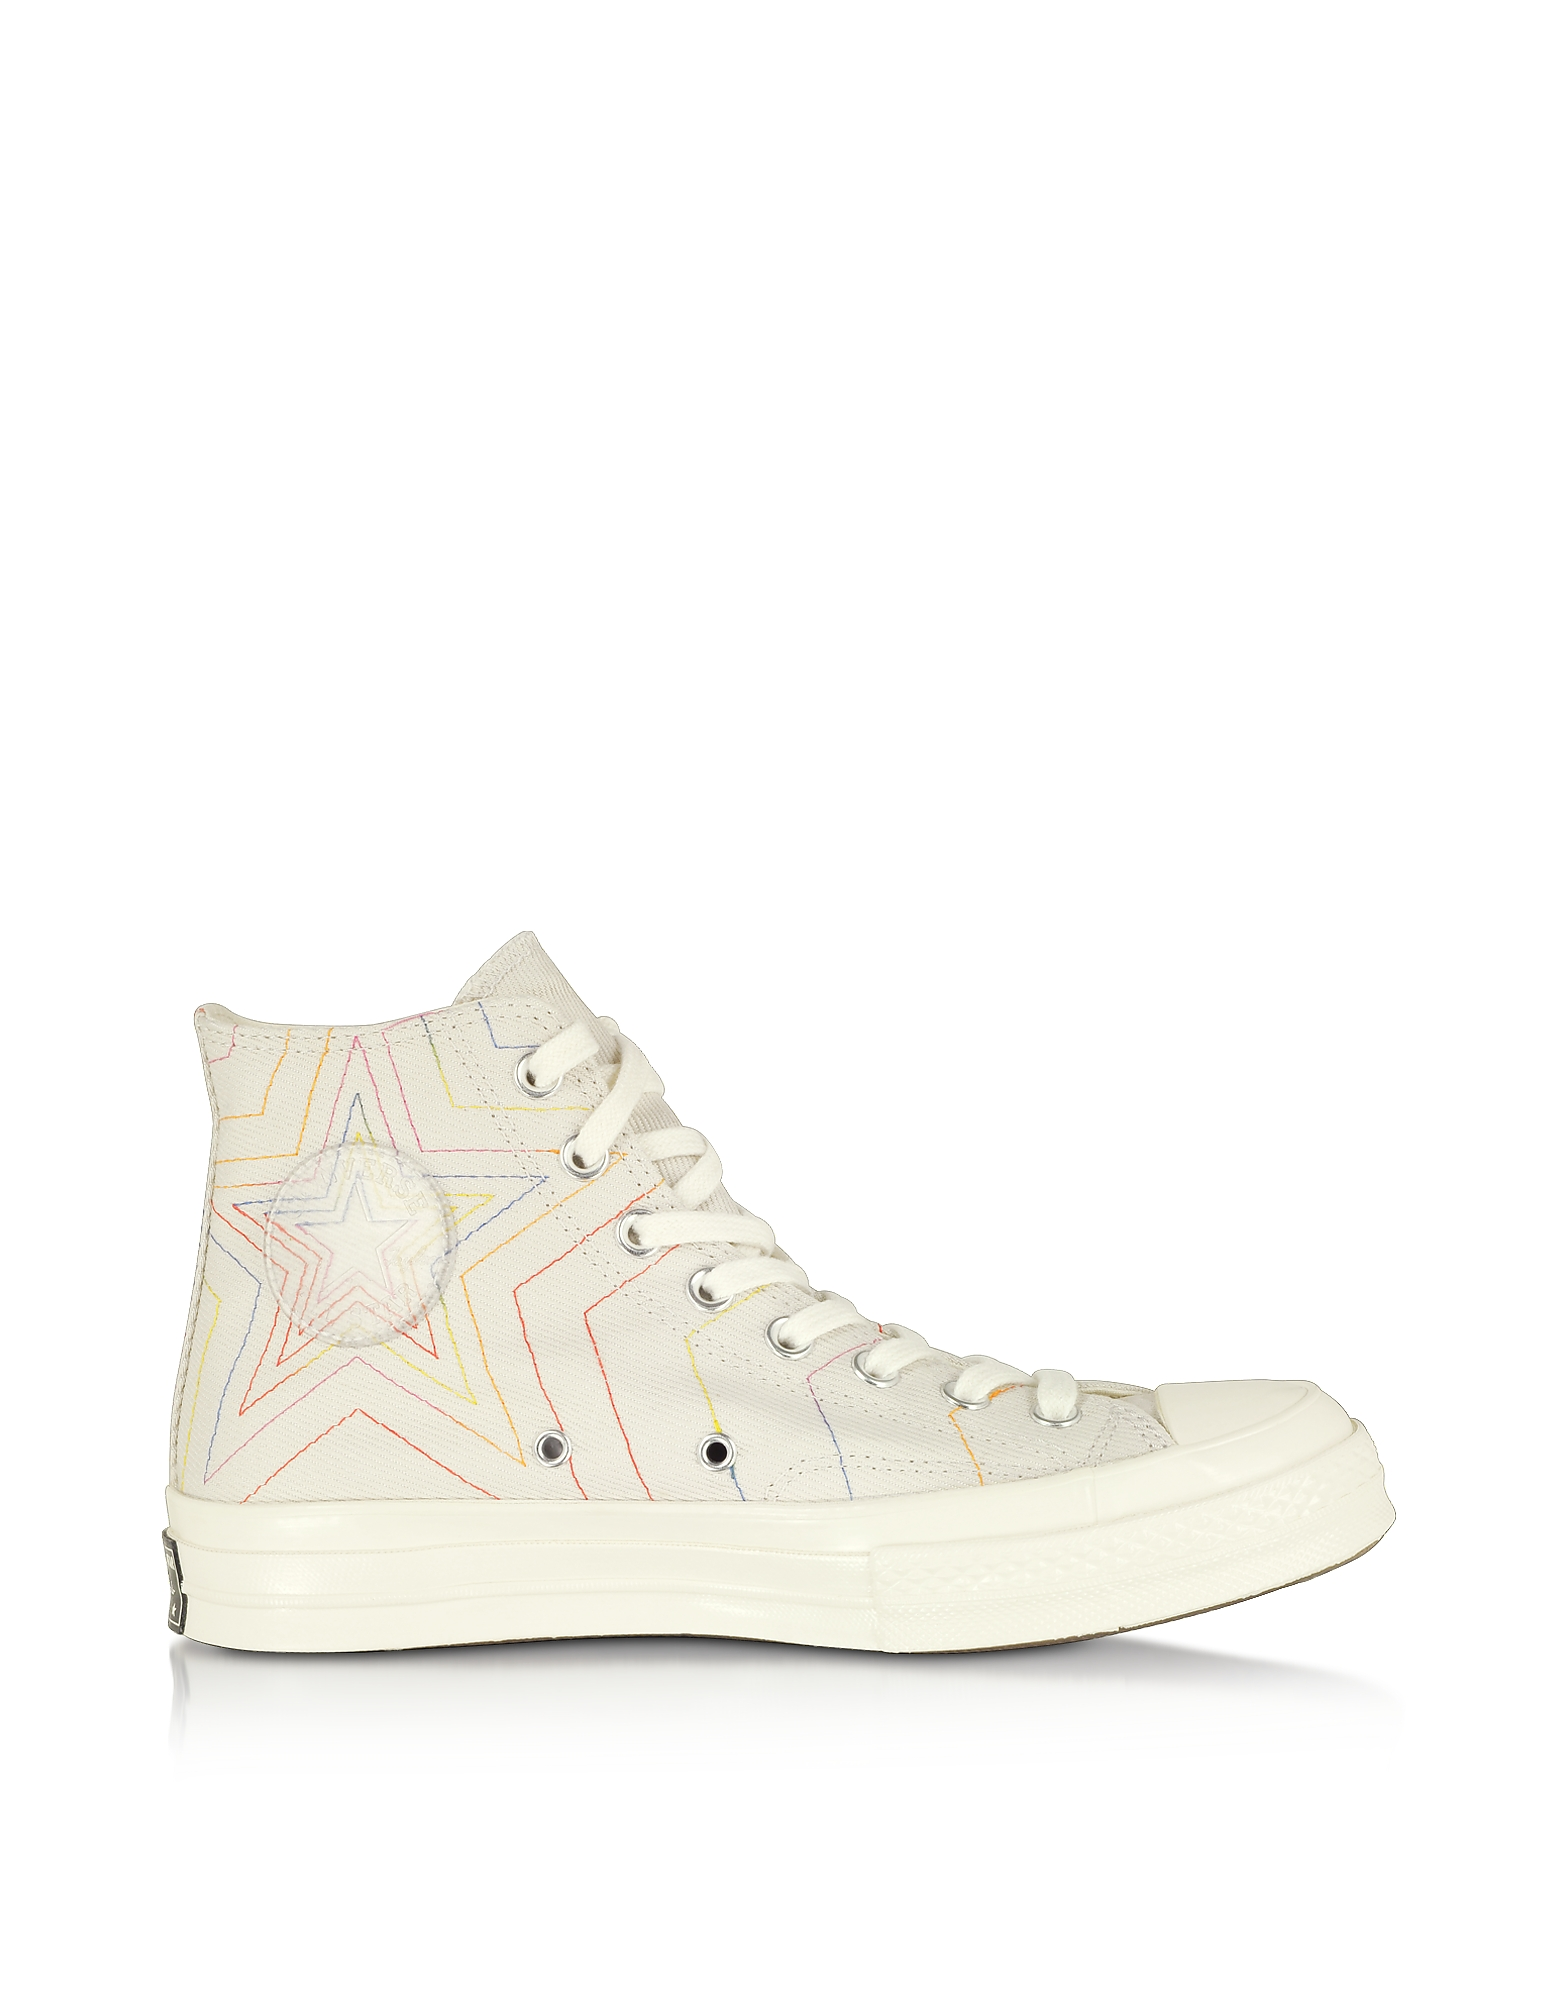 Converse Limited Edition Designer Shoes, Pale Putty Chuck 70 Exploding Star High Top